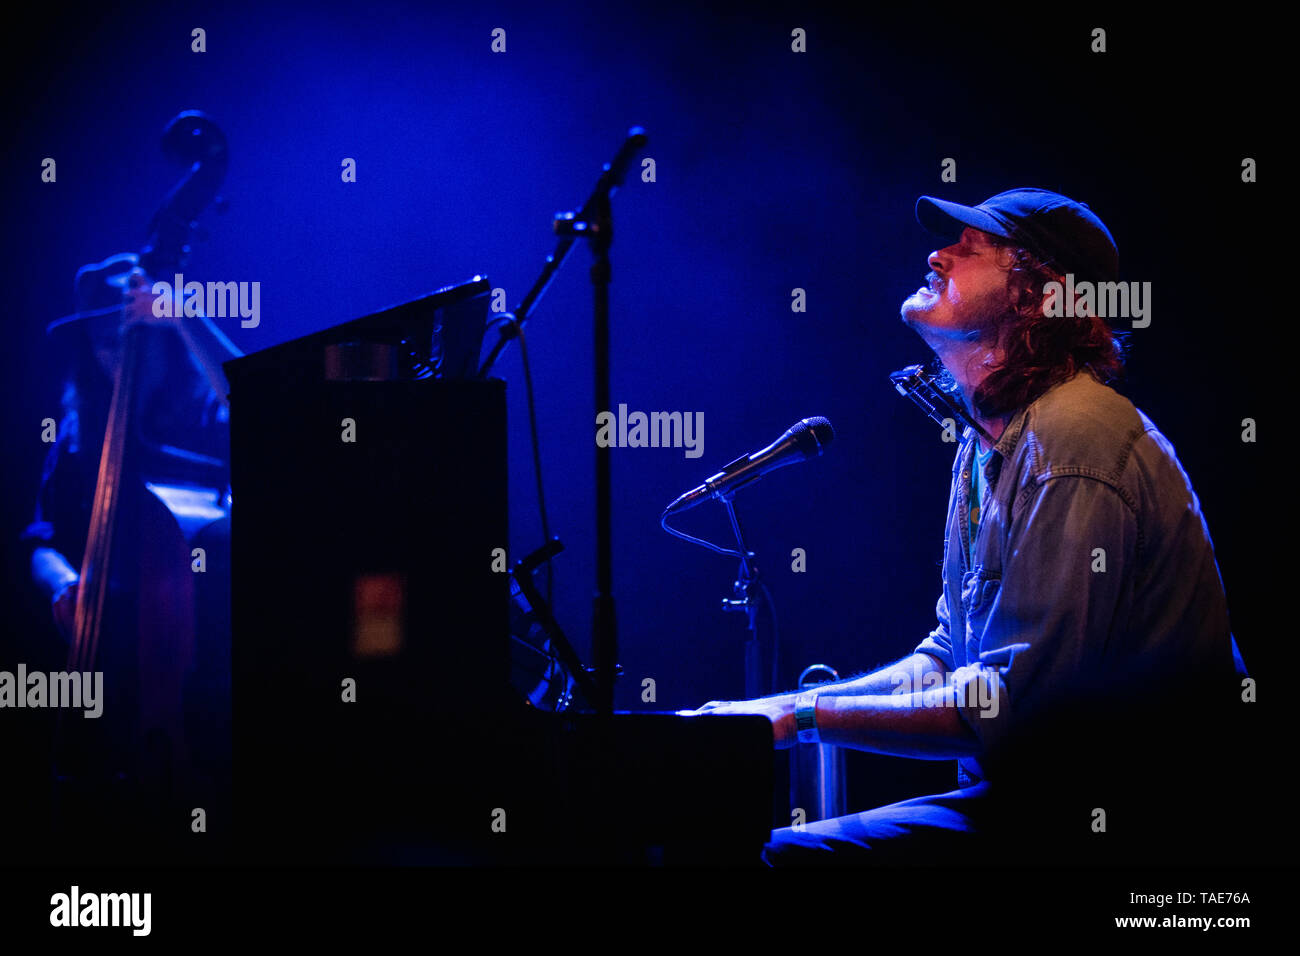 Denmark, Copenhagen - May 18, 2019. The Swedish singer, songwriter and musician Daniel Norgren performs a live concert at VEGA in Copenhagen. (Photo credit: Gonzales Photo - Christian Hjorth). - Stock Image